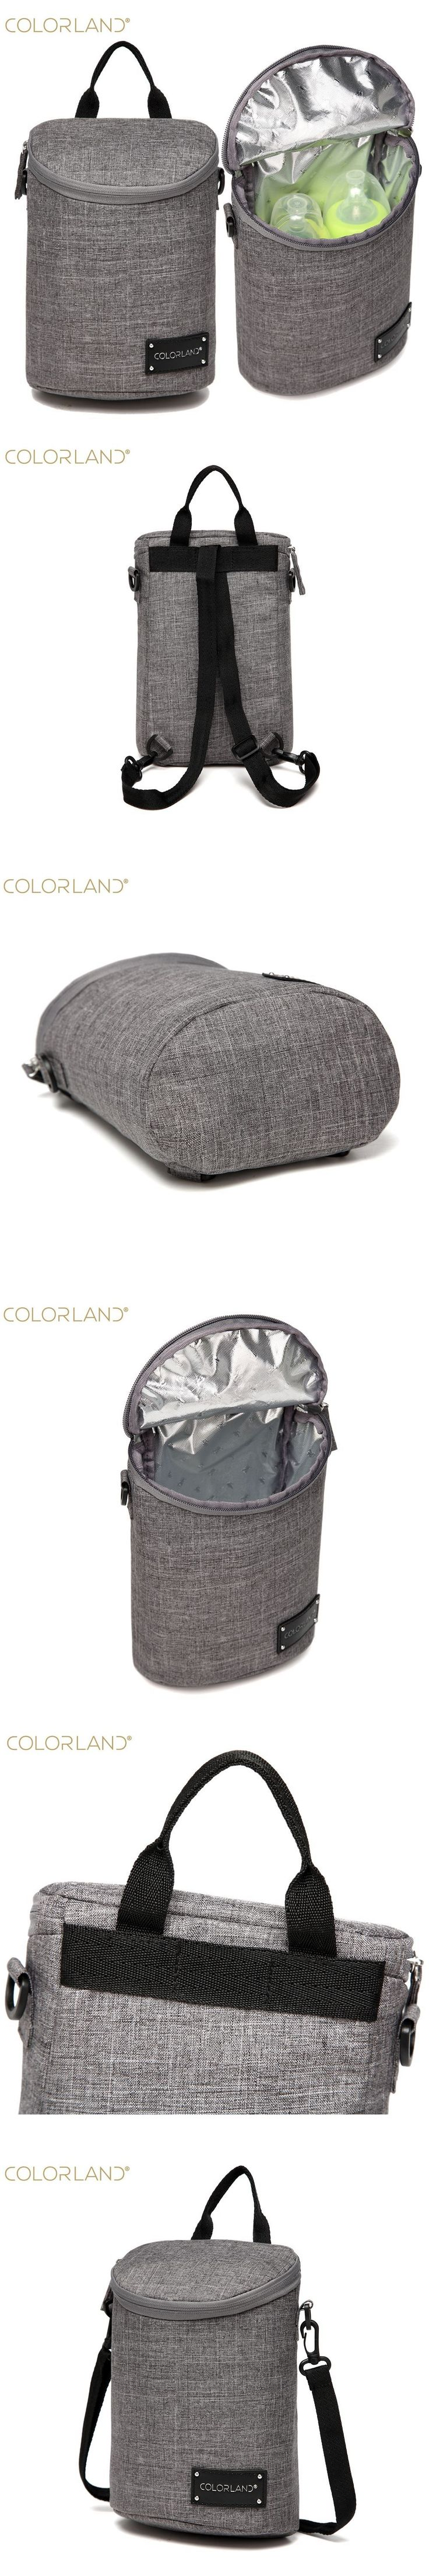 COLORLAND Infant Bolsa Termica Insulation Thermos Lunch Bags Mamadeira Waterproof Baby Bottle Holder Food Storage Tote bag Hobos